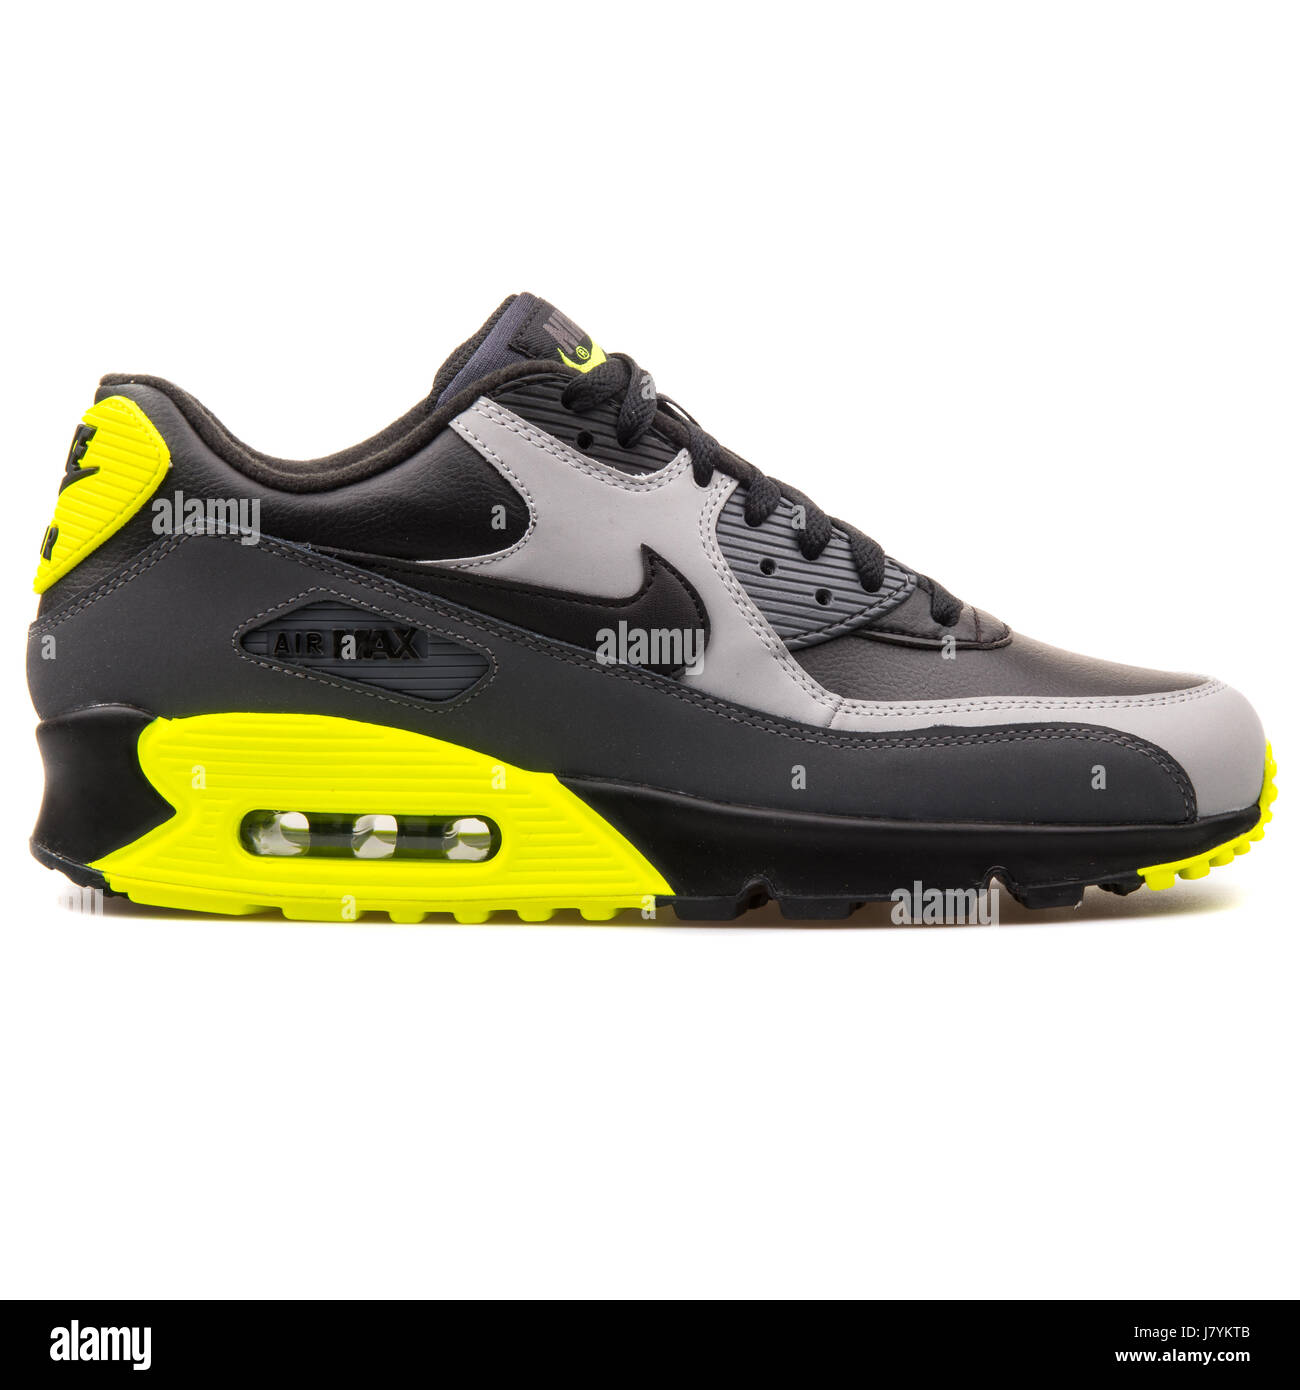 Nike Air Max 90 LTR Black Grey and Yellow Men Sports Sneakers - 652980-007 38d6a33db